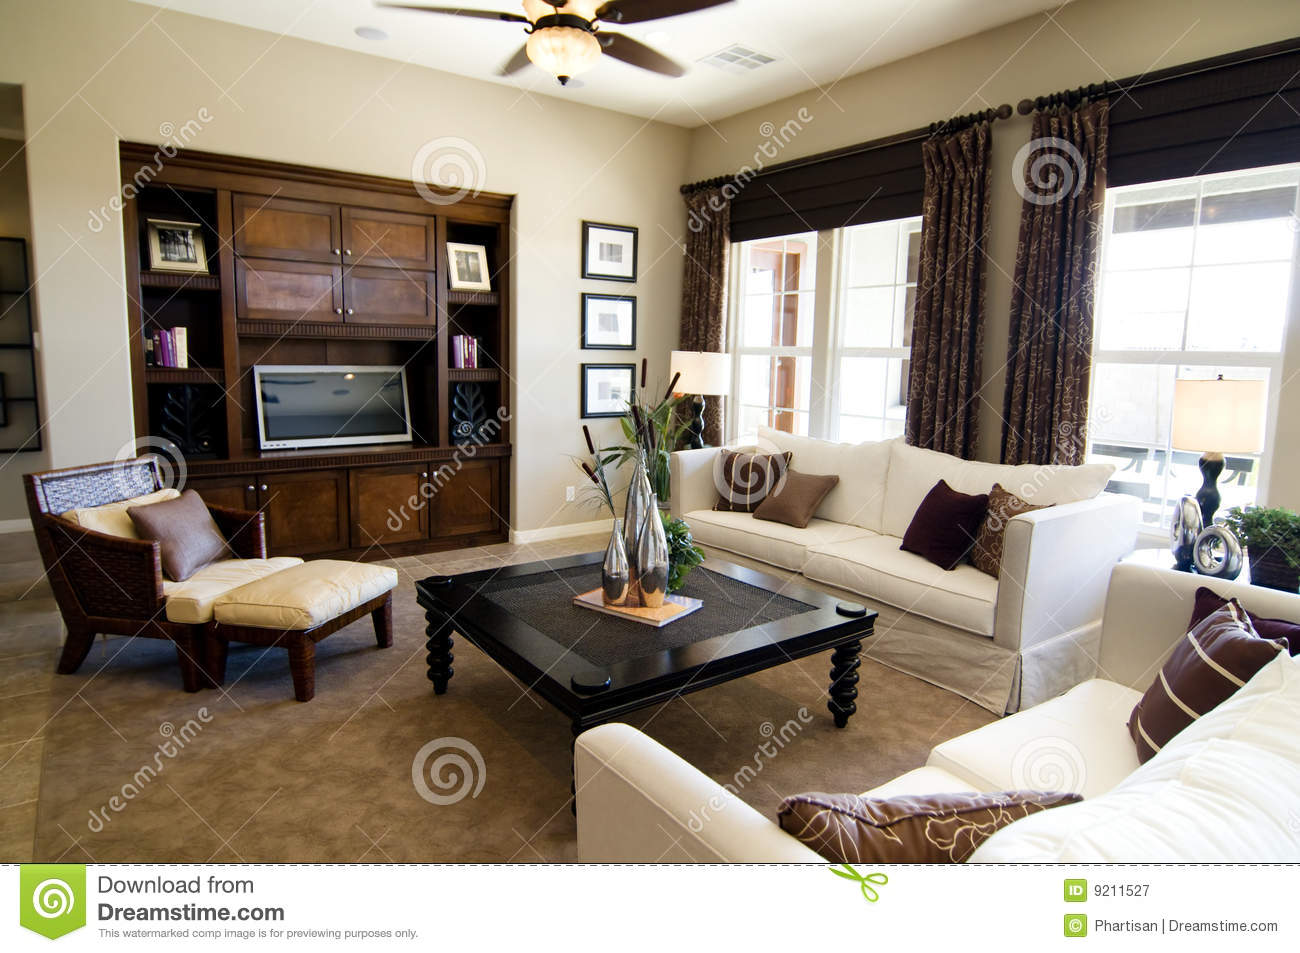 sch nes gro es wohnzimmer lizenzfreie stockfotografie. Black Bedroom Furniture Sets. Home Design Ideas